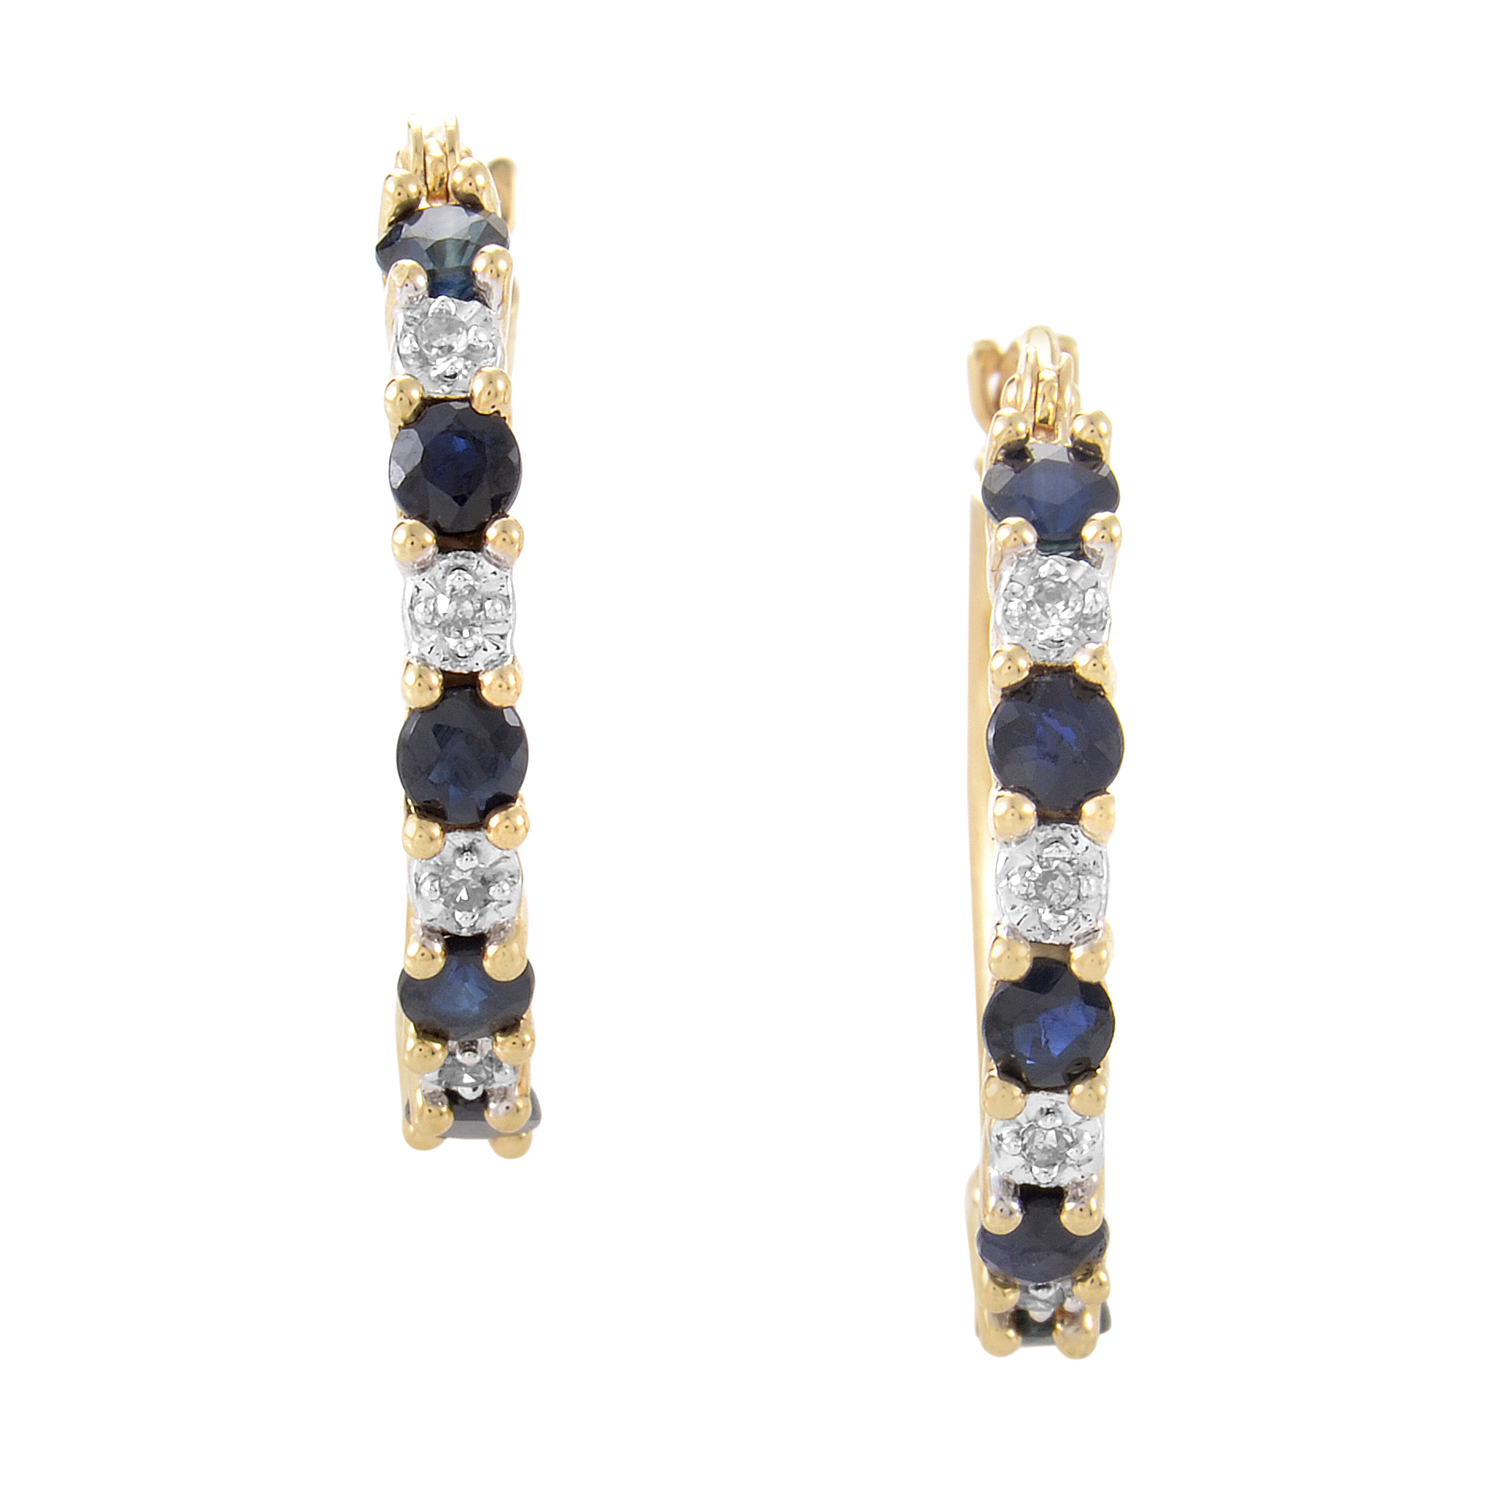 14K Yellow Gold Diamond & Sapphire Hoop Earrings PSB01-011214